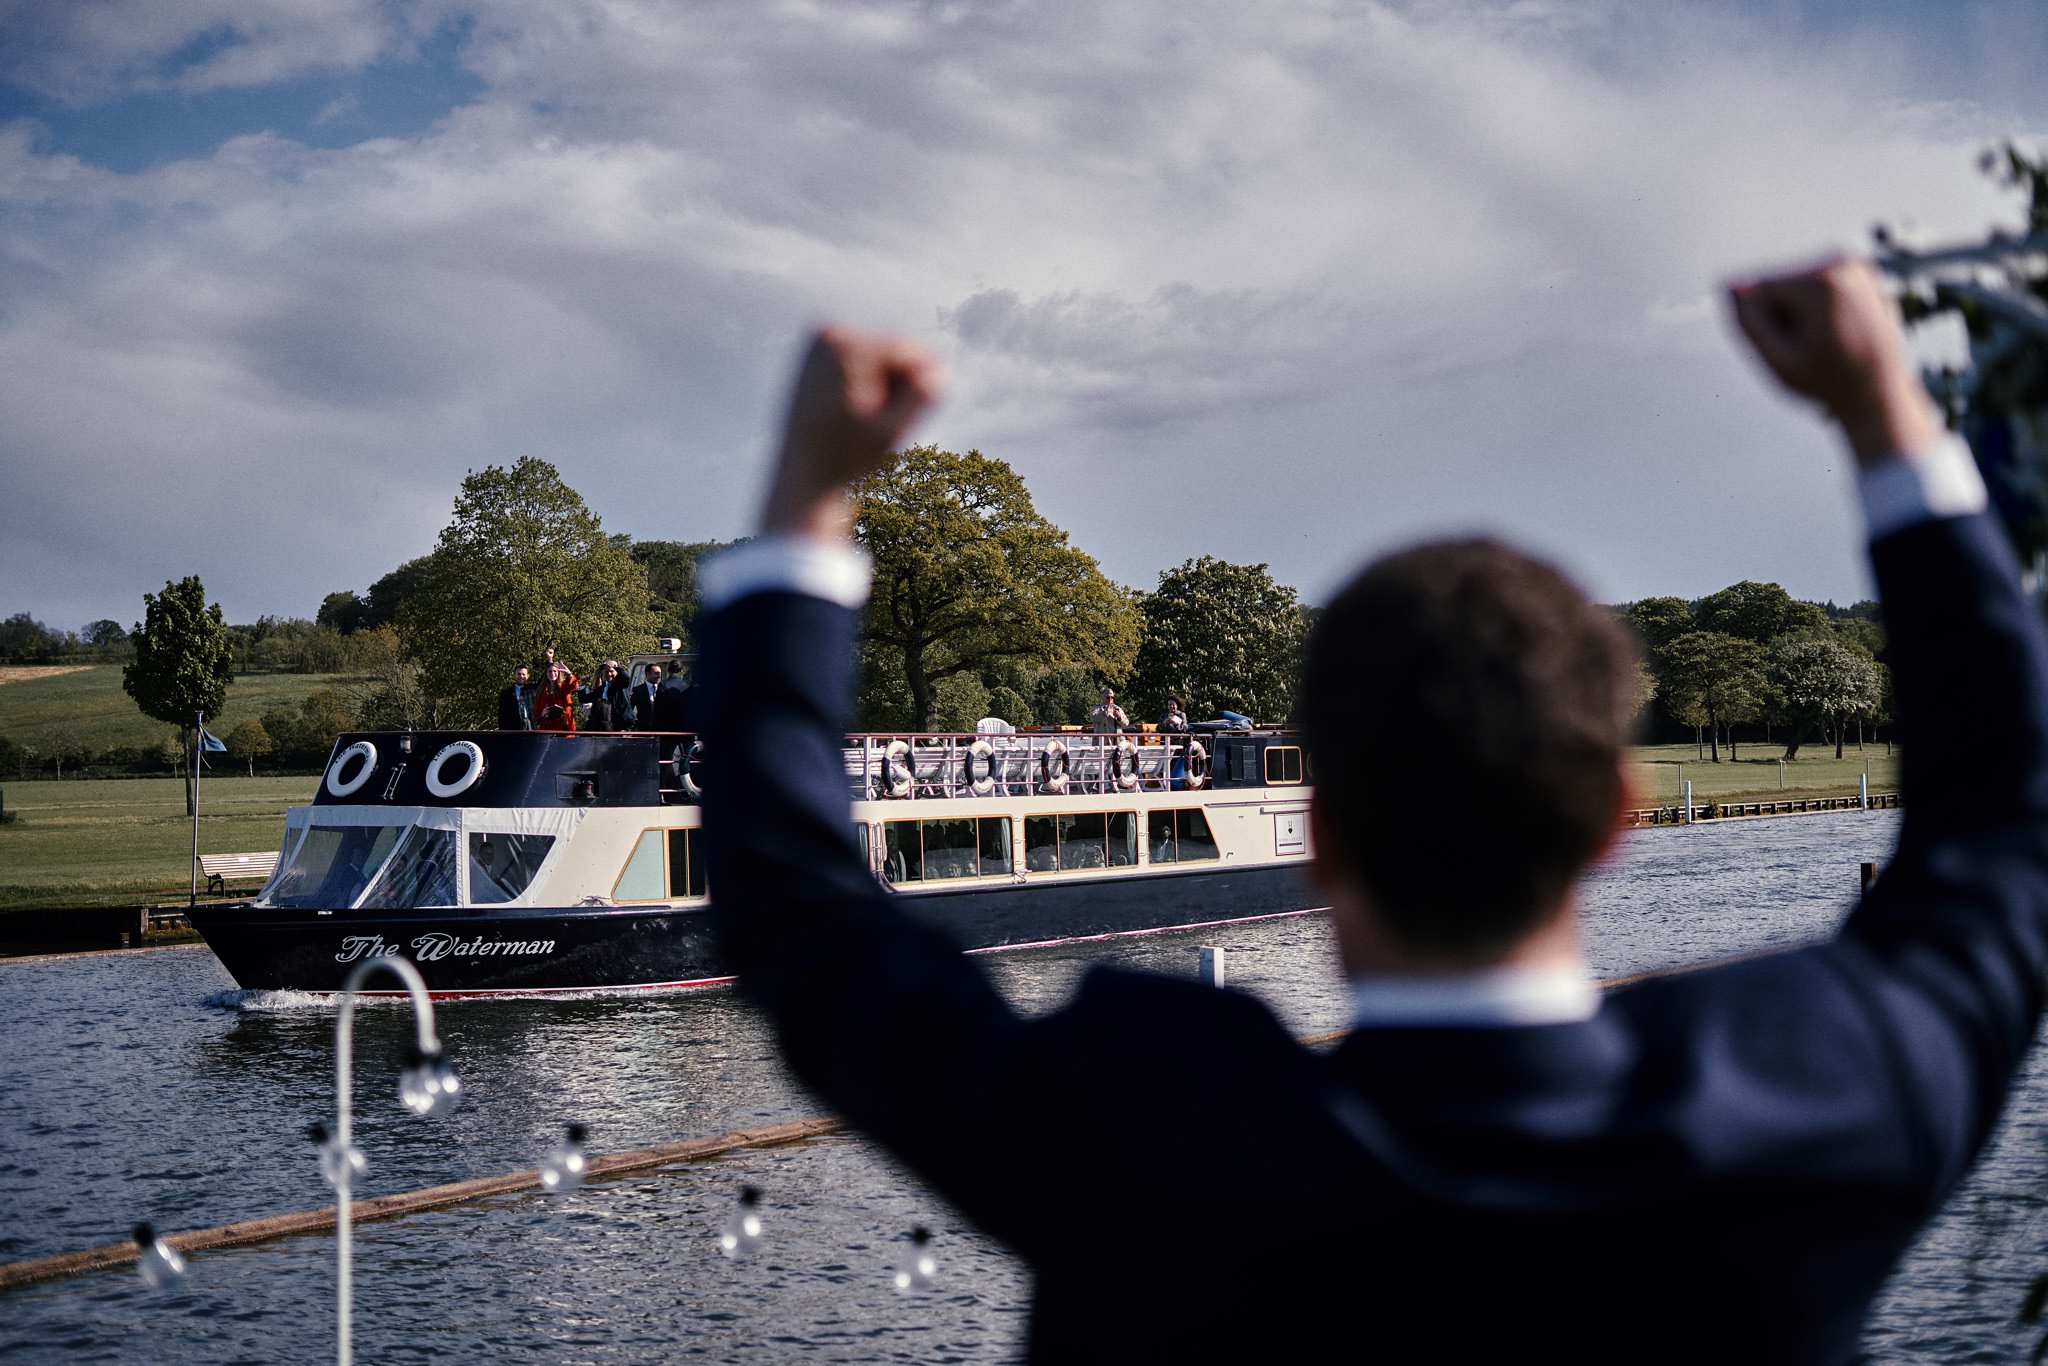 Groom welcomes wedding guests arriving on boat